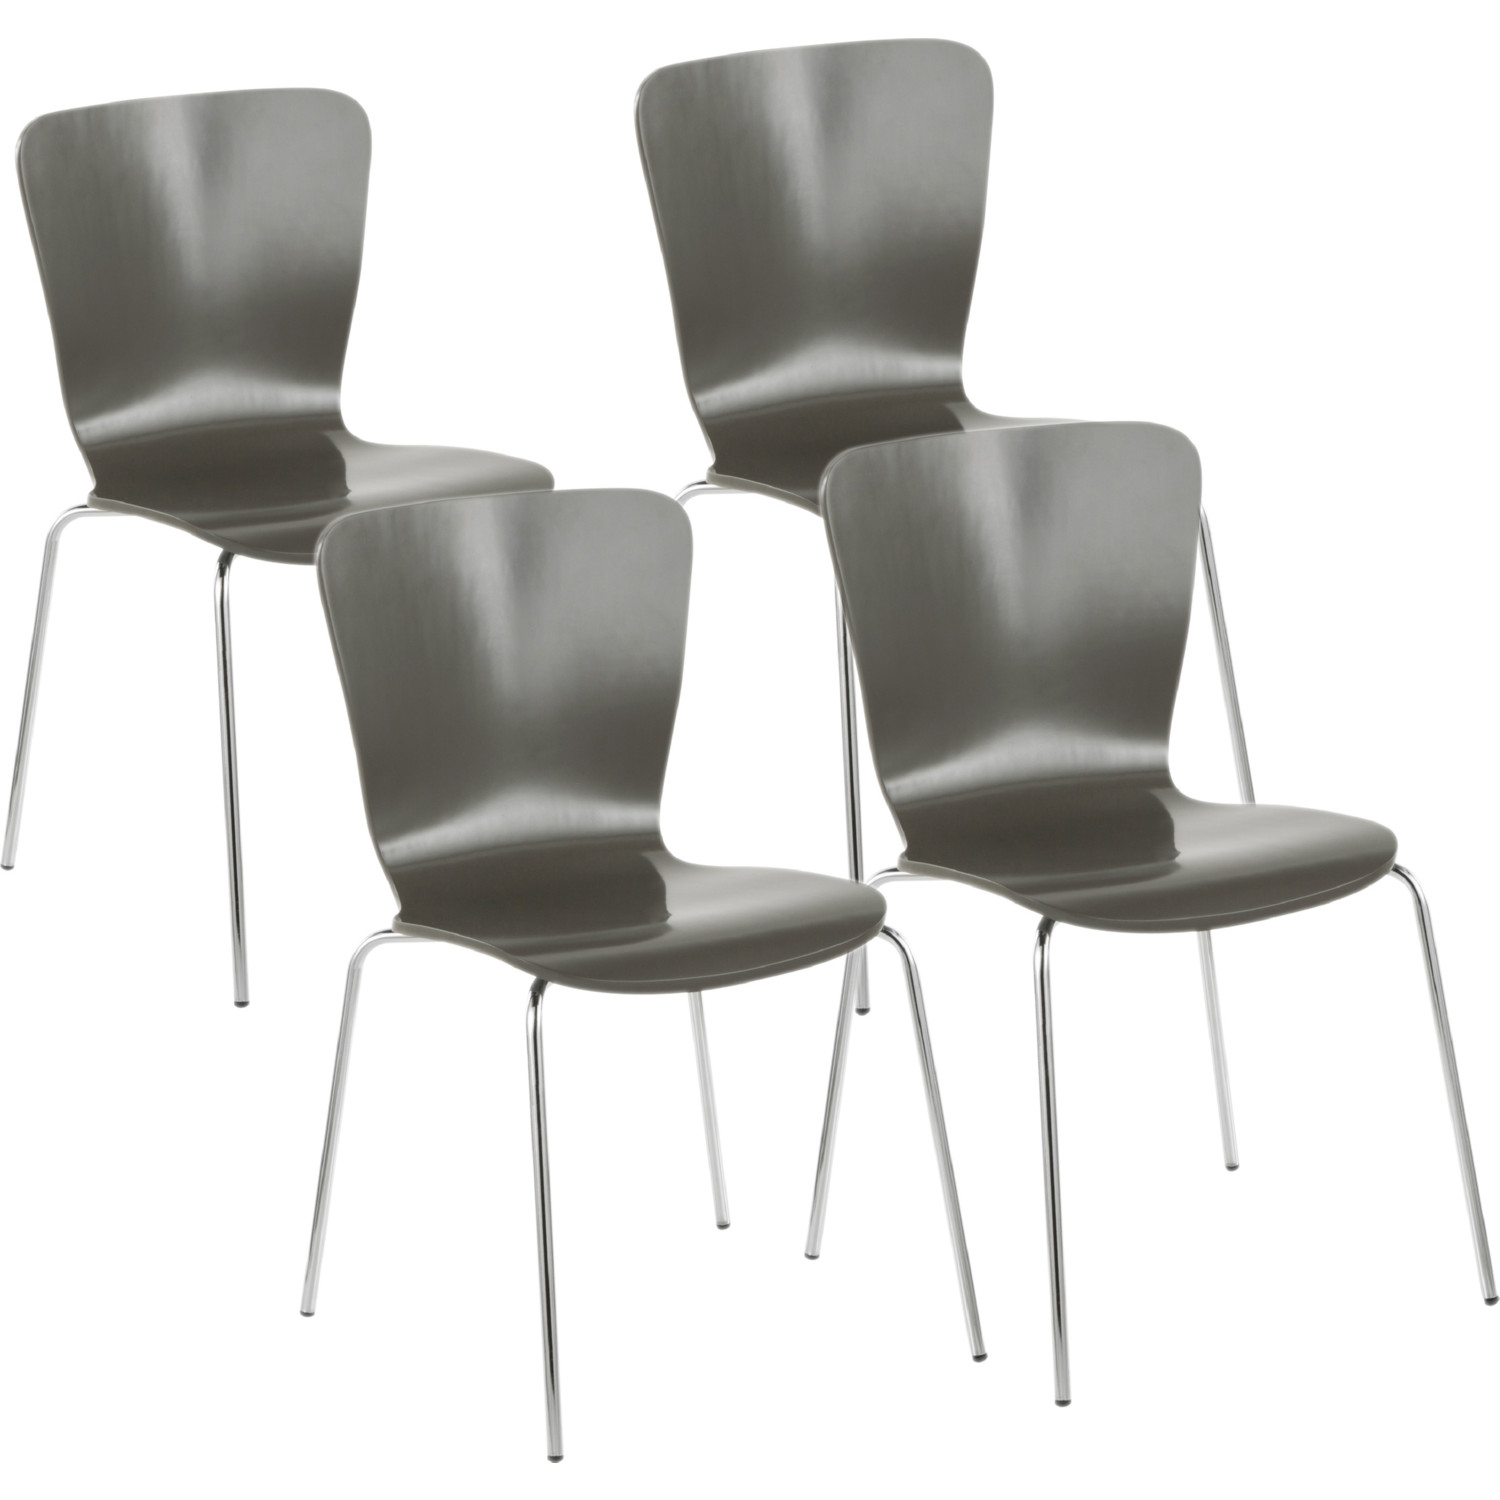 Bentwood Stackable Dining Chair In Grey Wood Chrome Set Of 4 By Lumisource